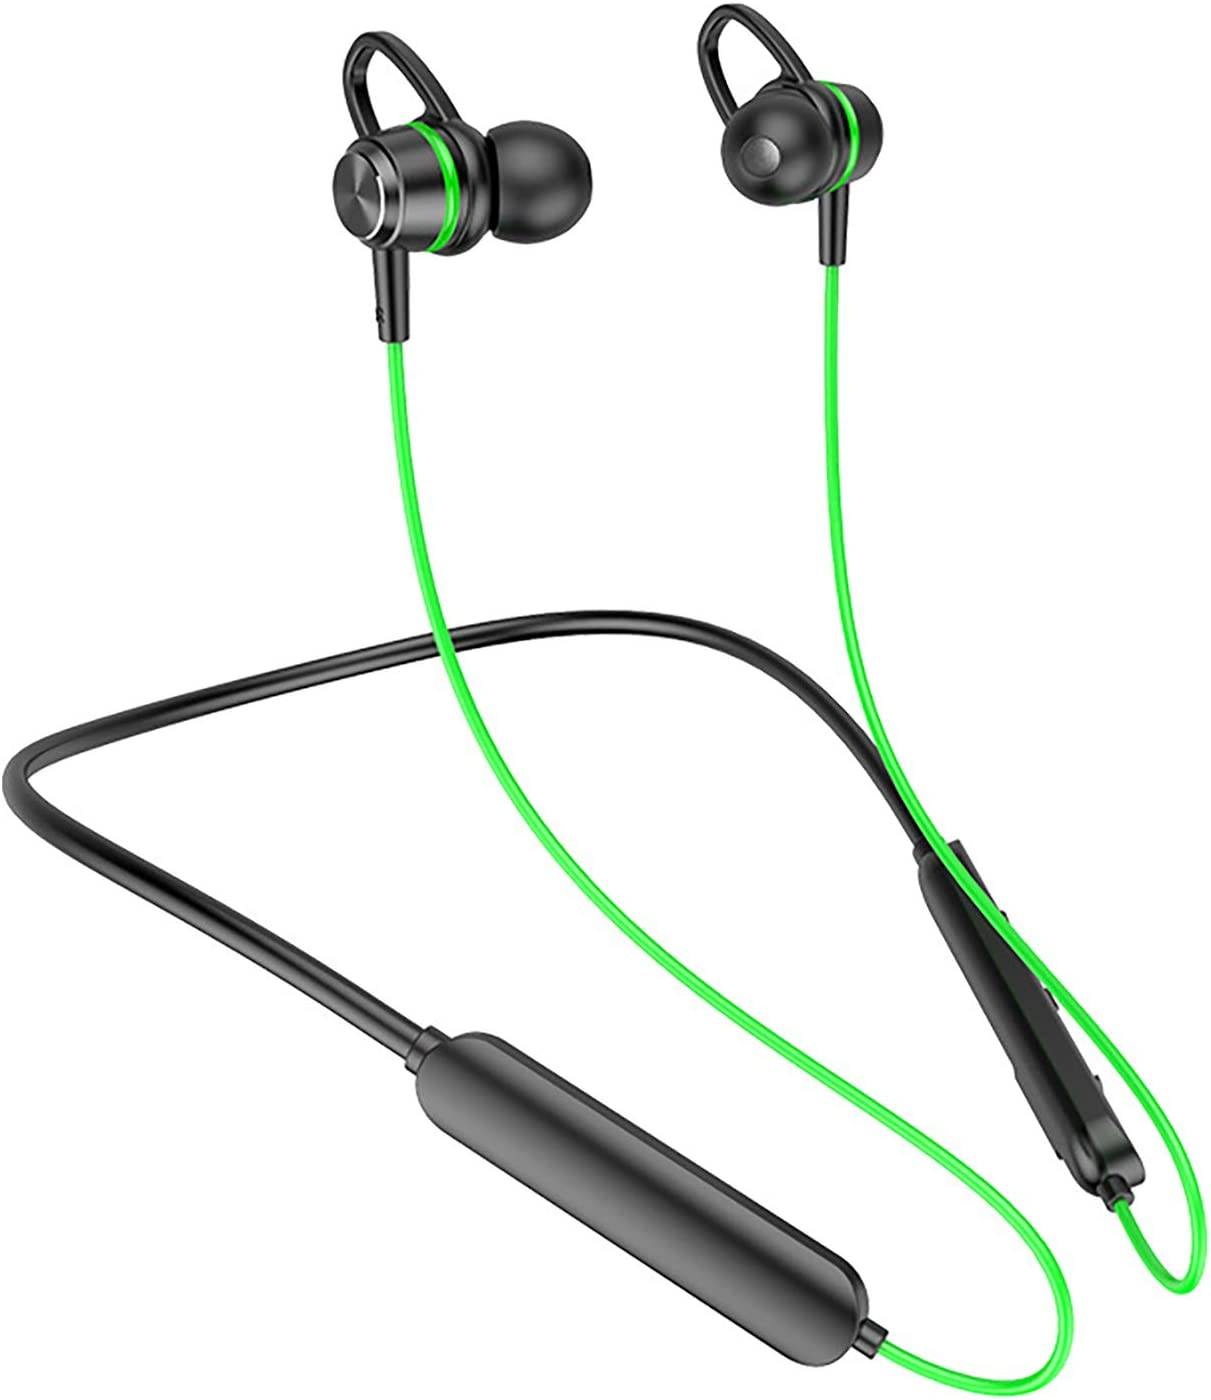 LUYANhapy9 Sport Wireless Earbuds Bluetooth 5.0 Headphones,BT68 Rechargeable Wearable Heavy Bass Earphones Noise Cancelling Premium Deep Sound Bass Headset for Phone Green One Size